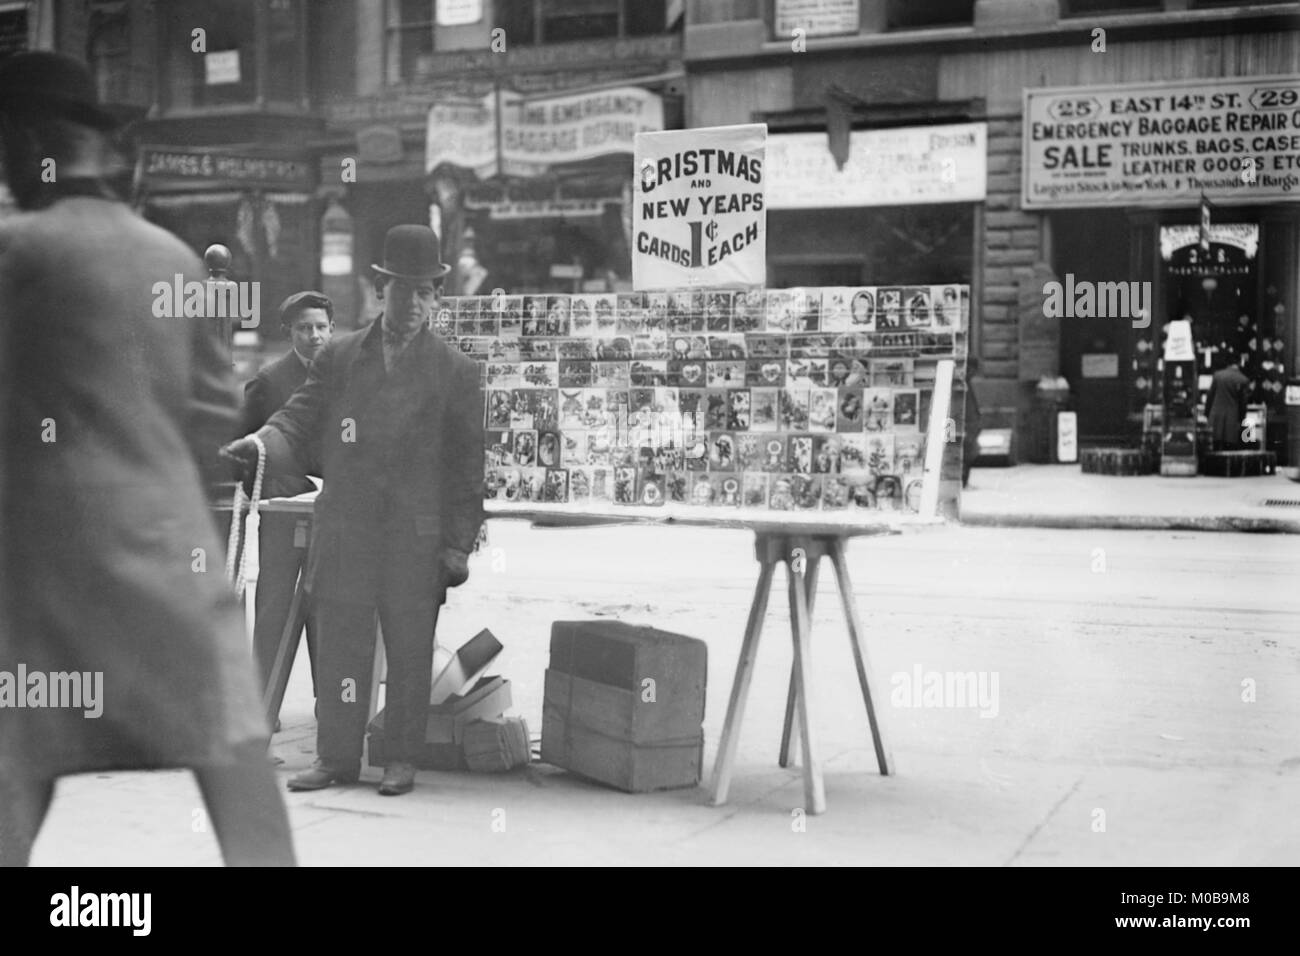 Street Vendor Sells Christmas & New Years Cards of New York Street - Stock Image